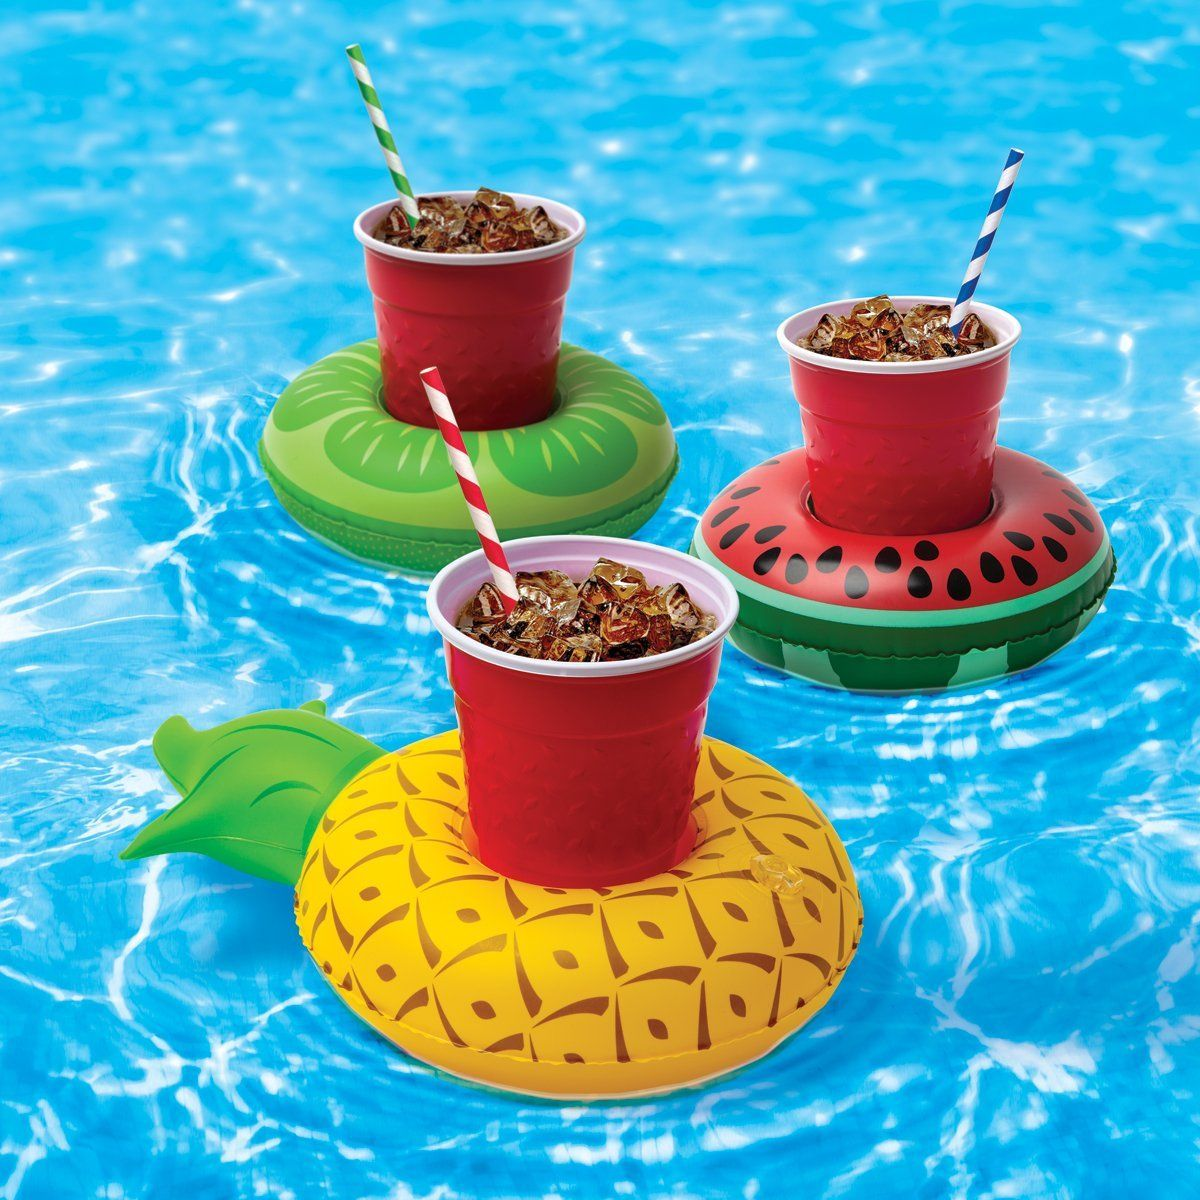 $11 BUY NOW